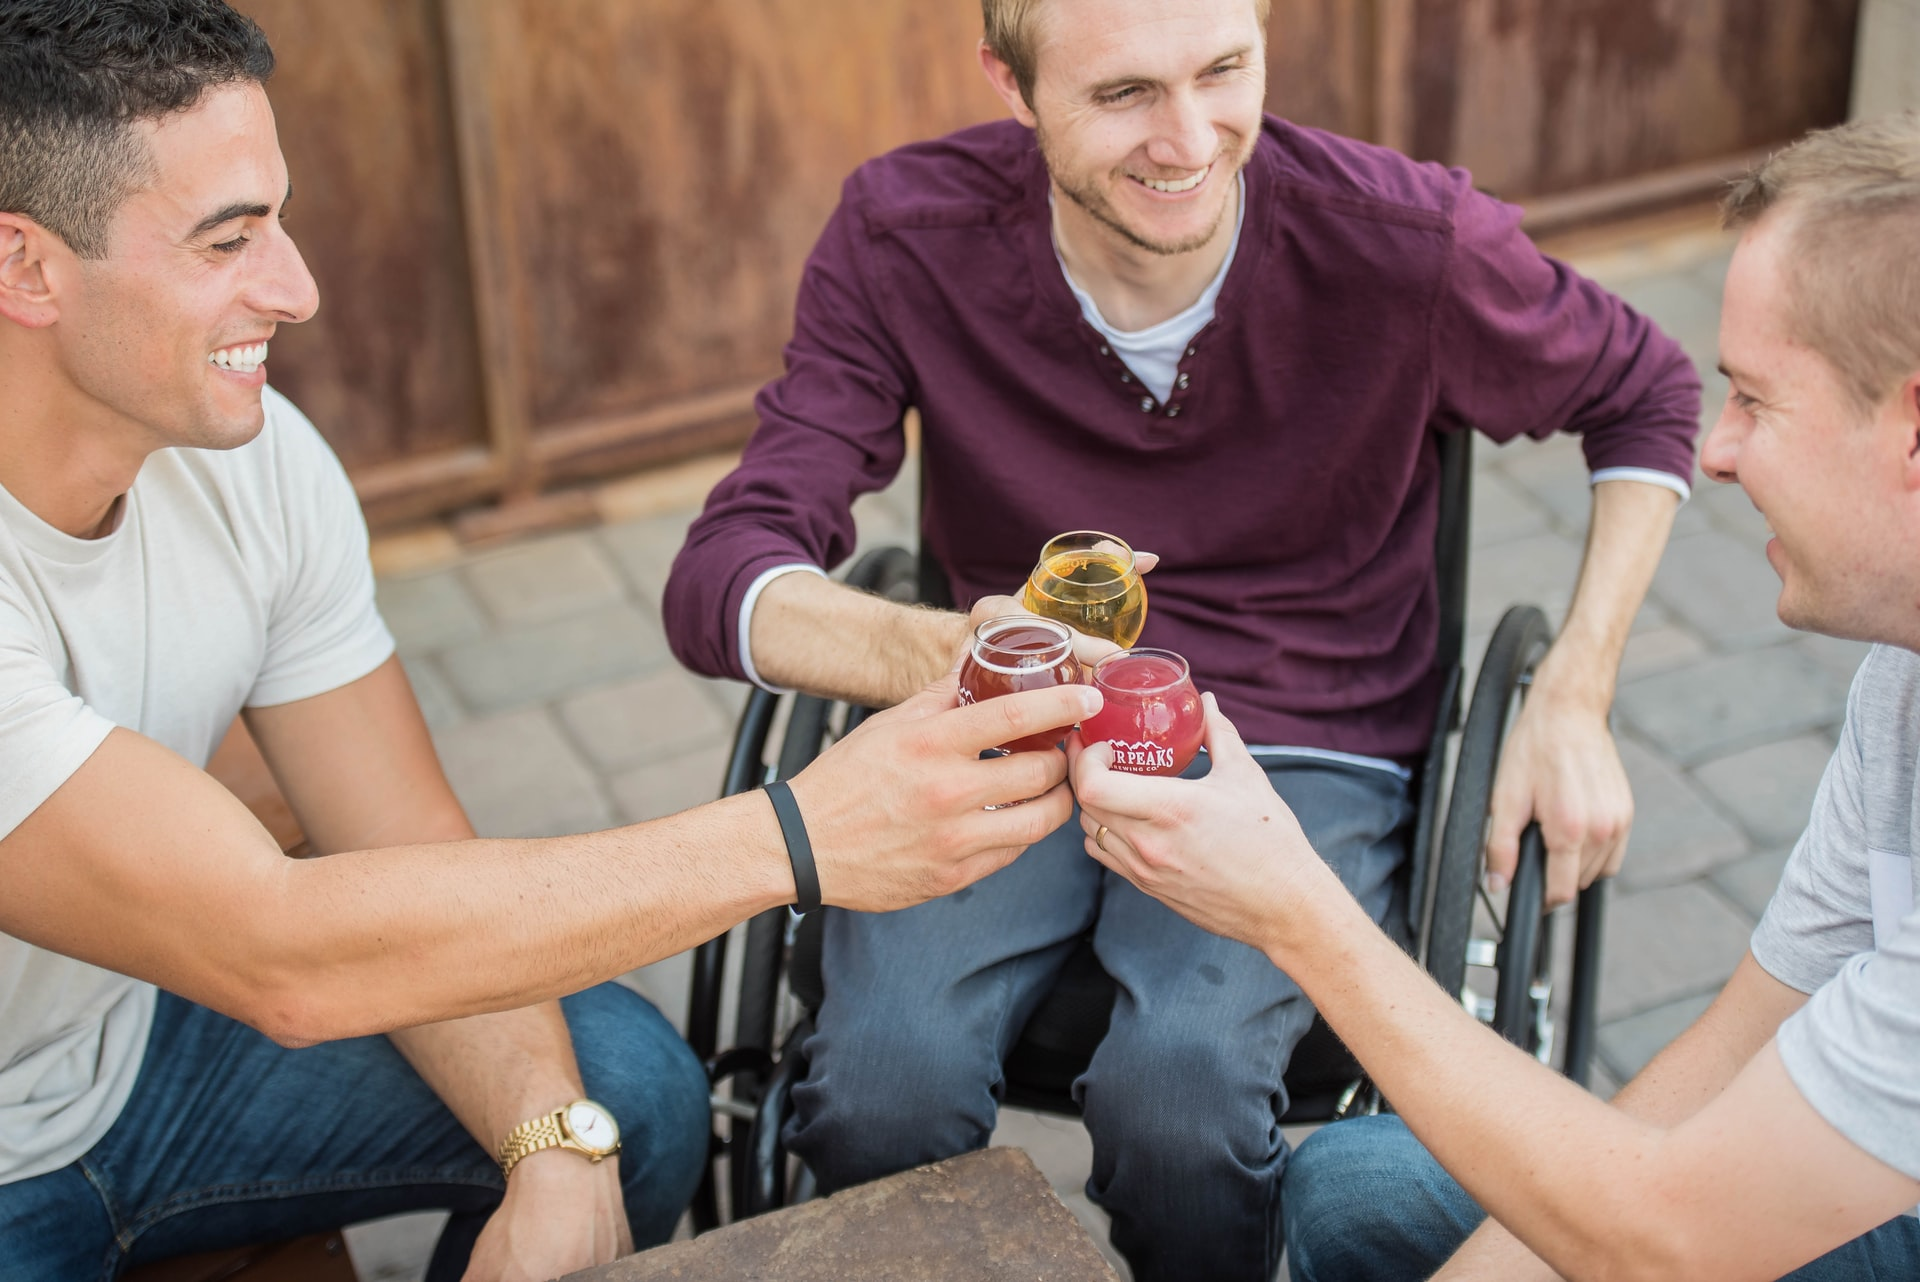 Moving tips with people with disabilities